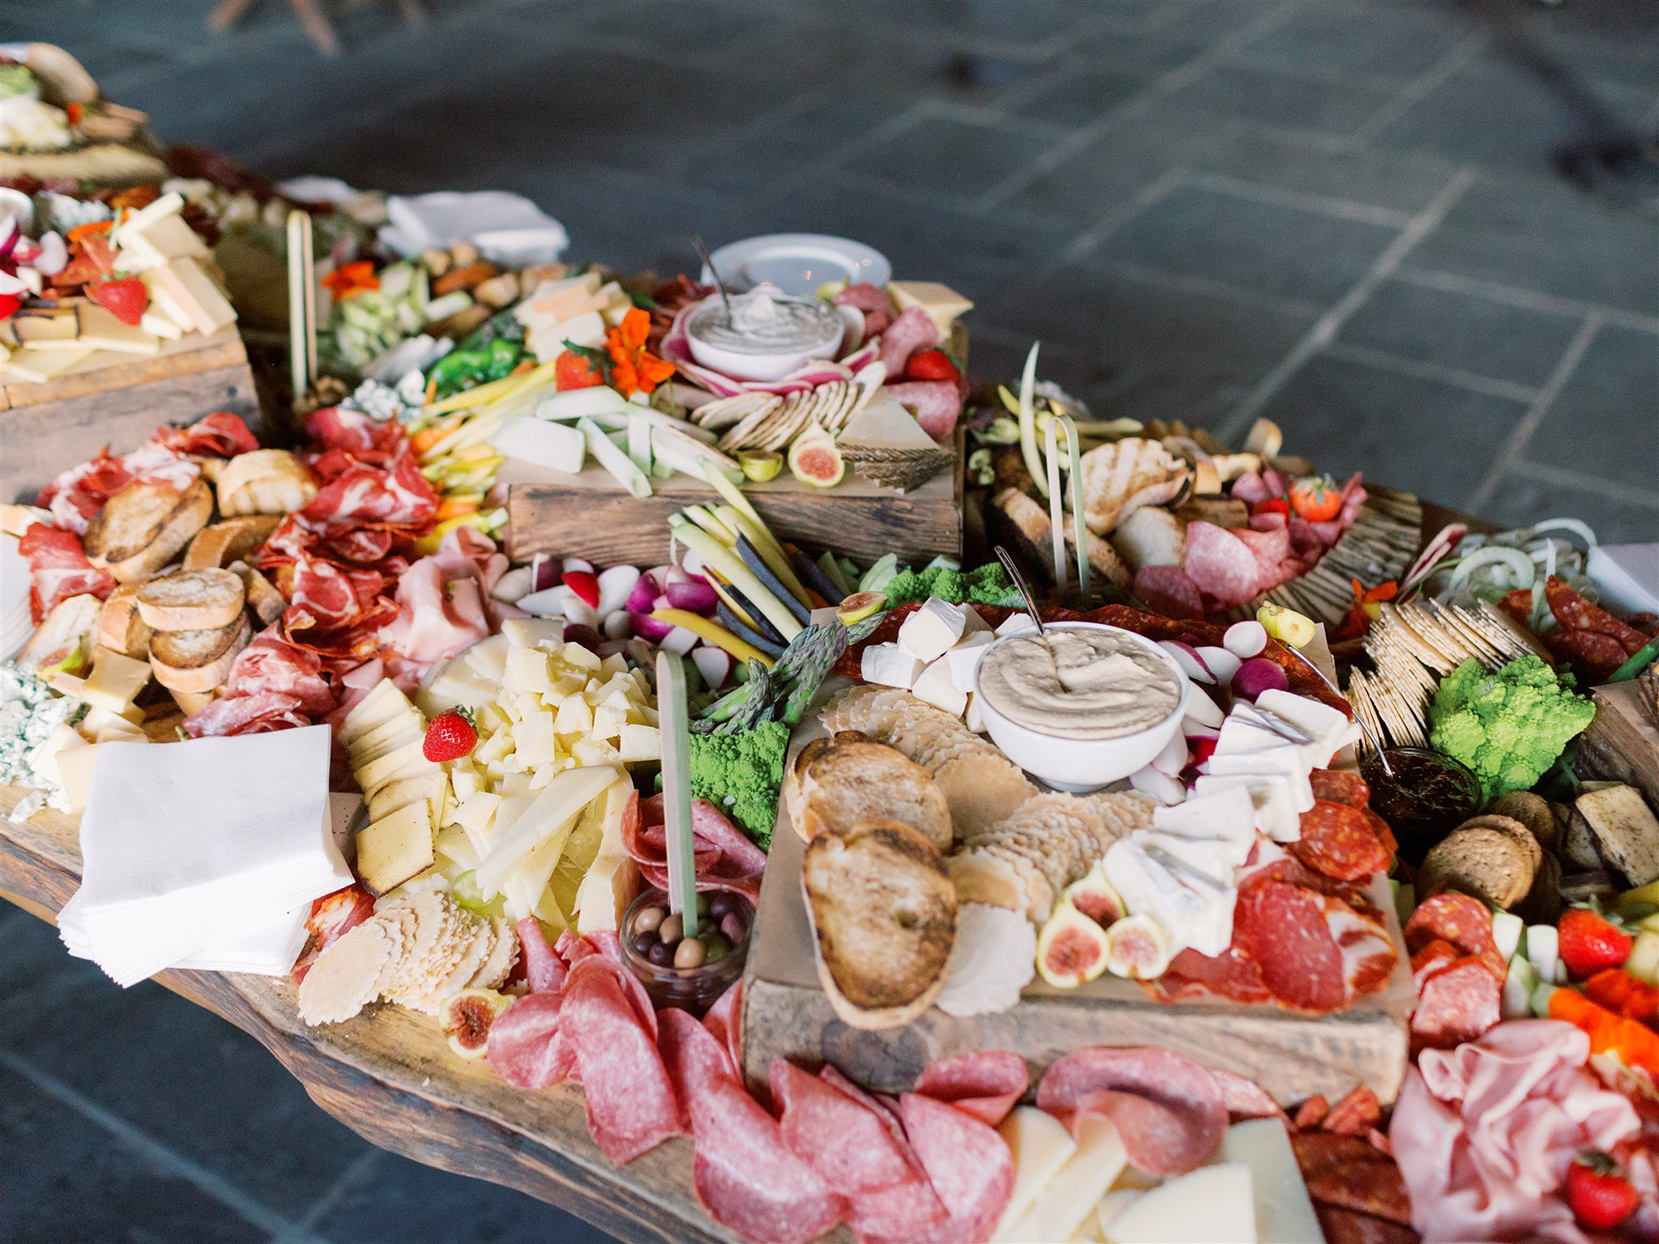 elaborate grazing table at wedding reception